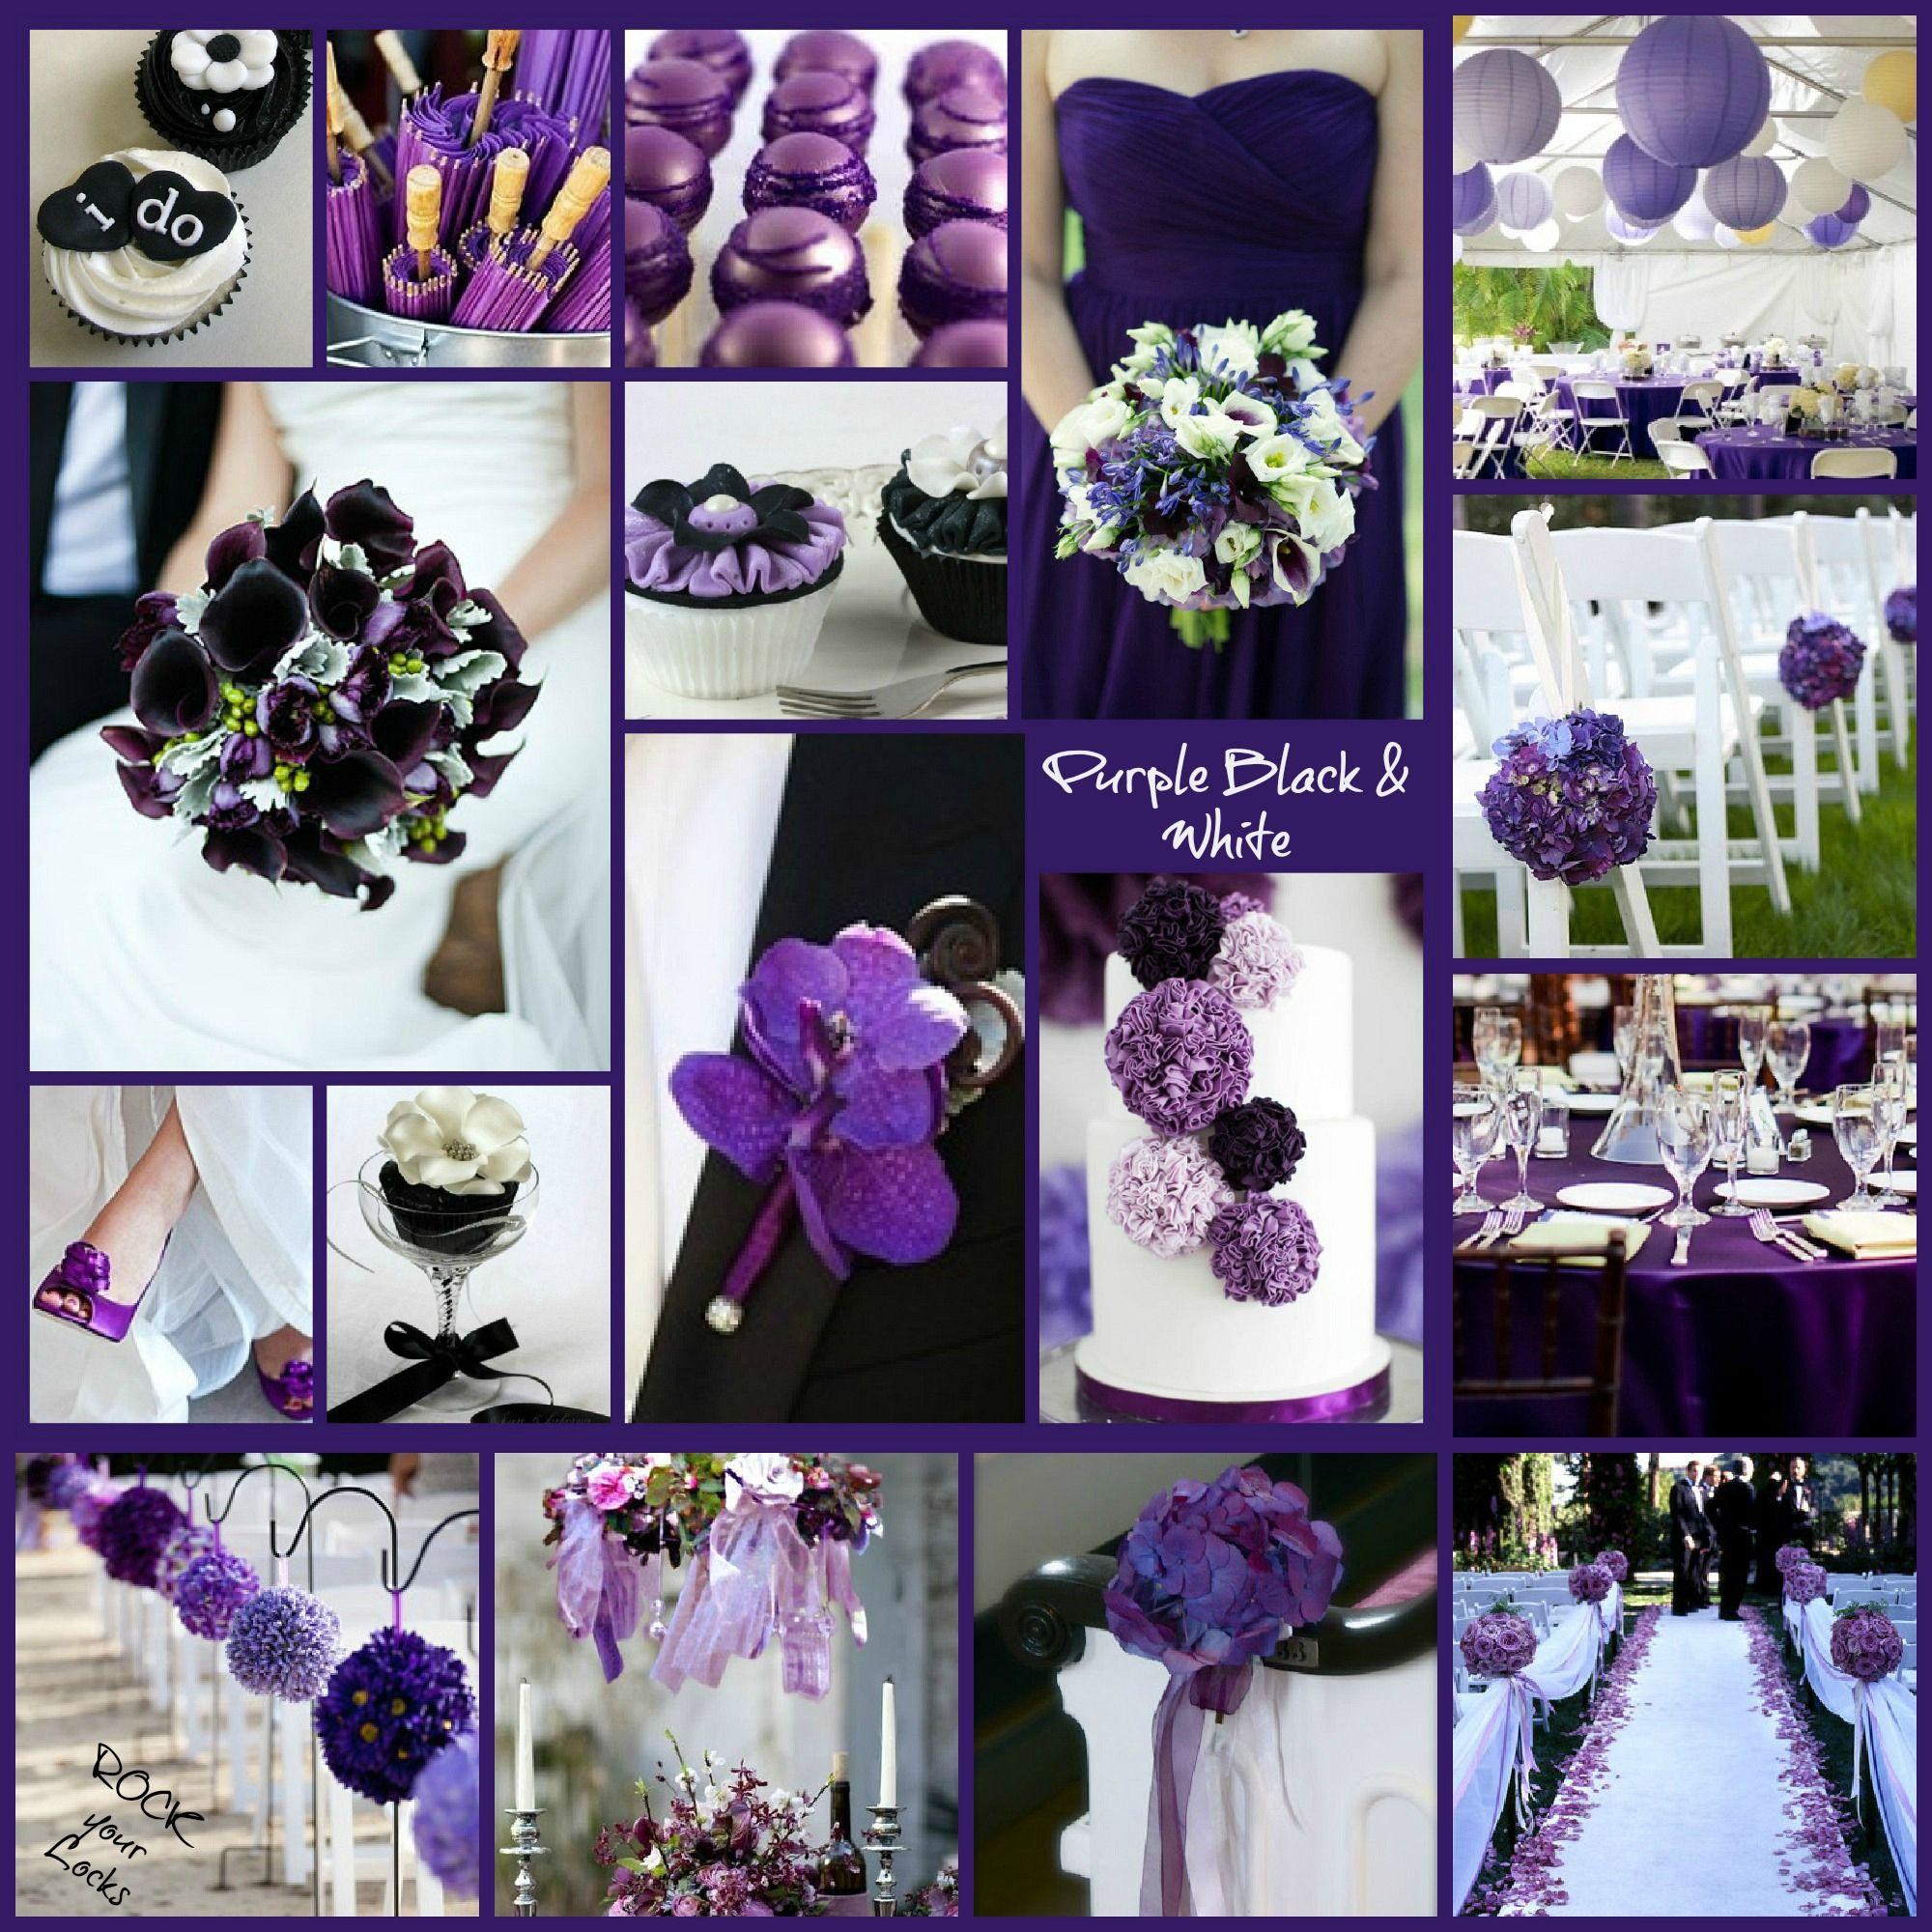 Black And Purple Wedding Ideas: Pin By Amanda Rousso On Wedding! In 2019